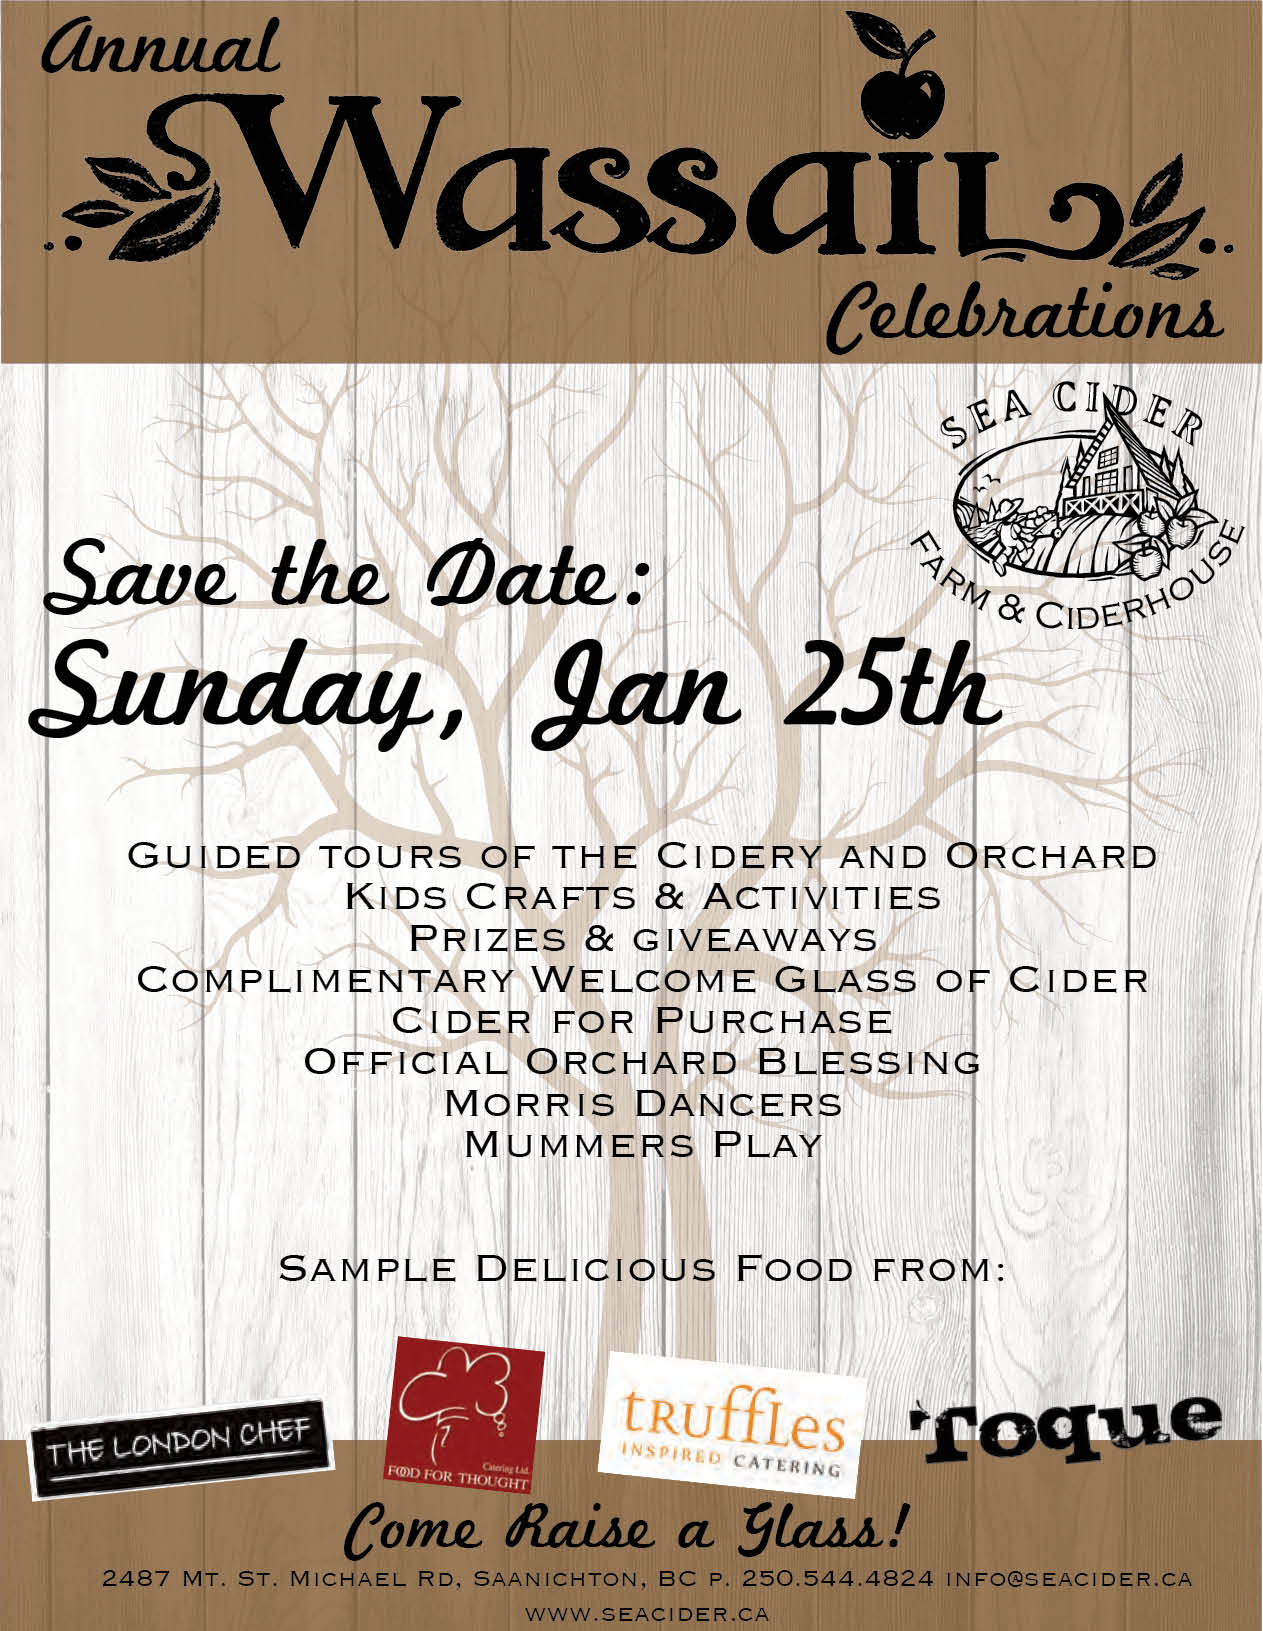 Wassail 2015 - Save the Date v2